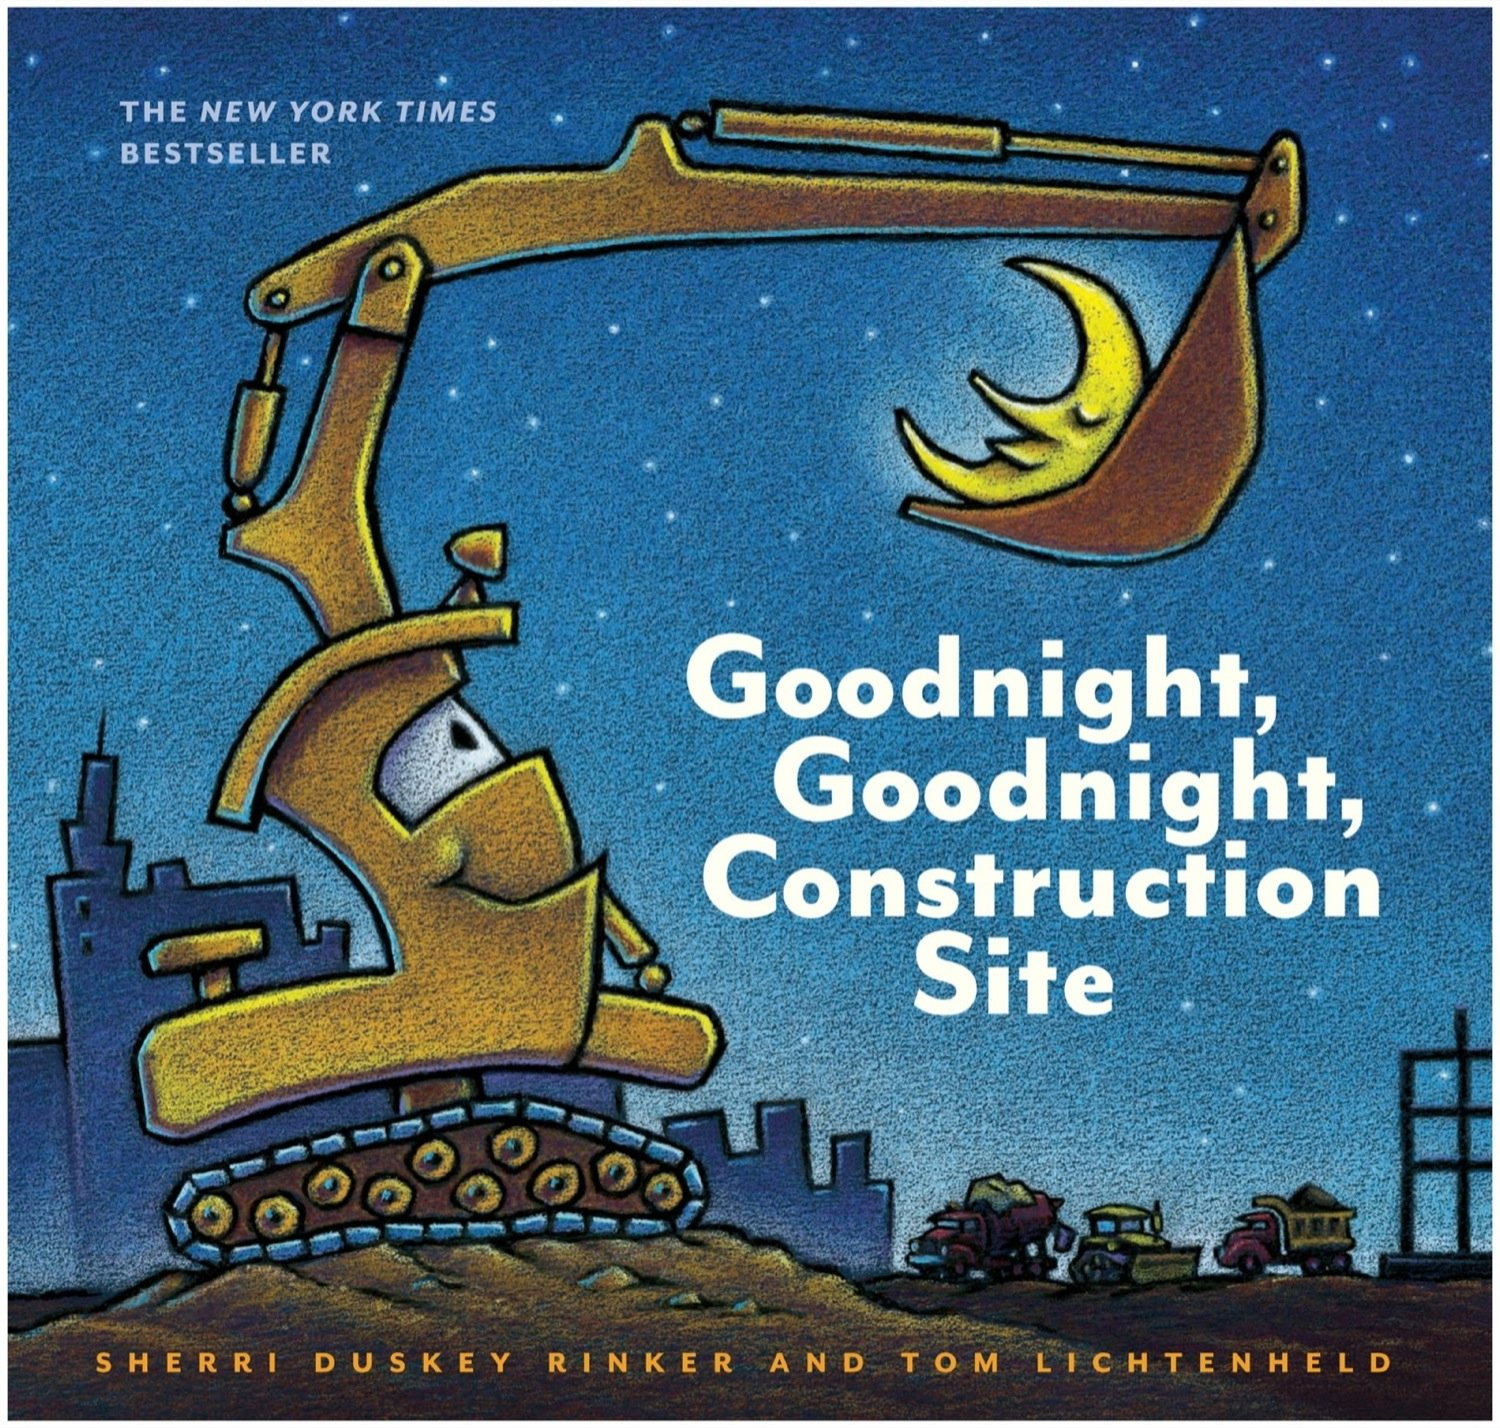 Goodnight, Goodnight Construction Site by Sherri Duskey Rinker, illustrated by Tom Lichtenheld.